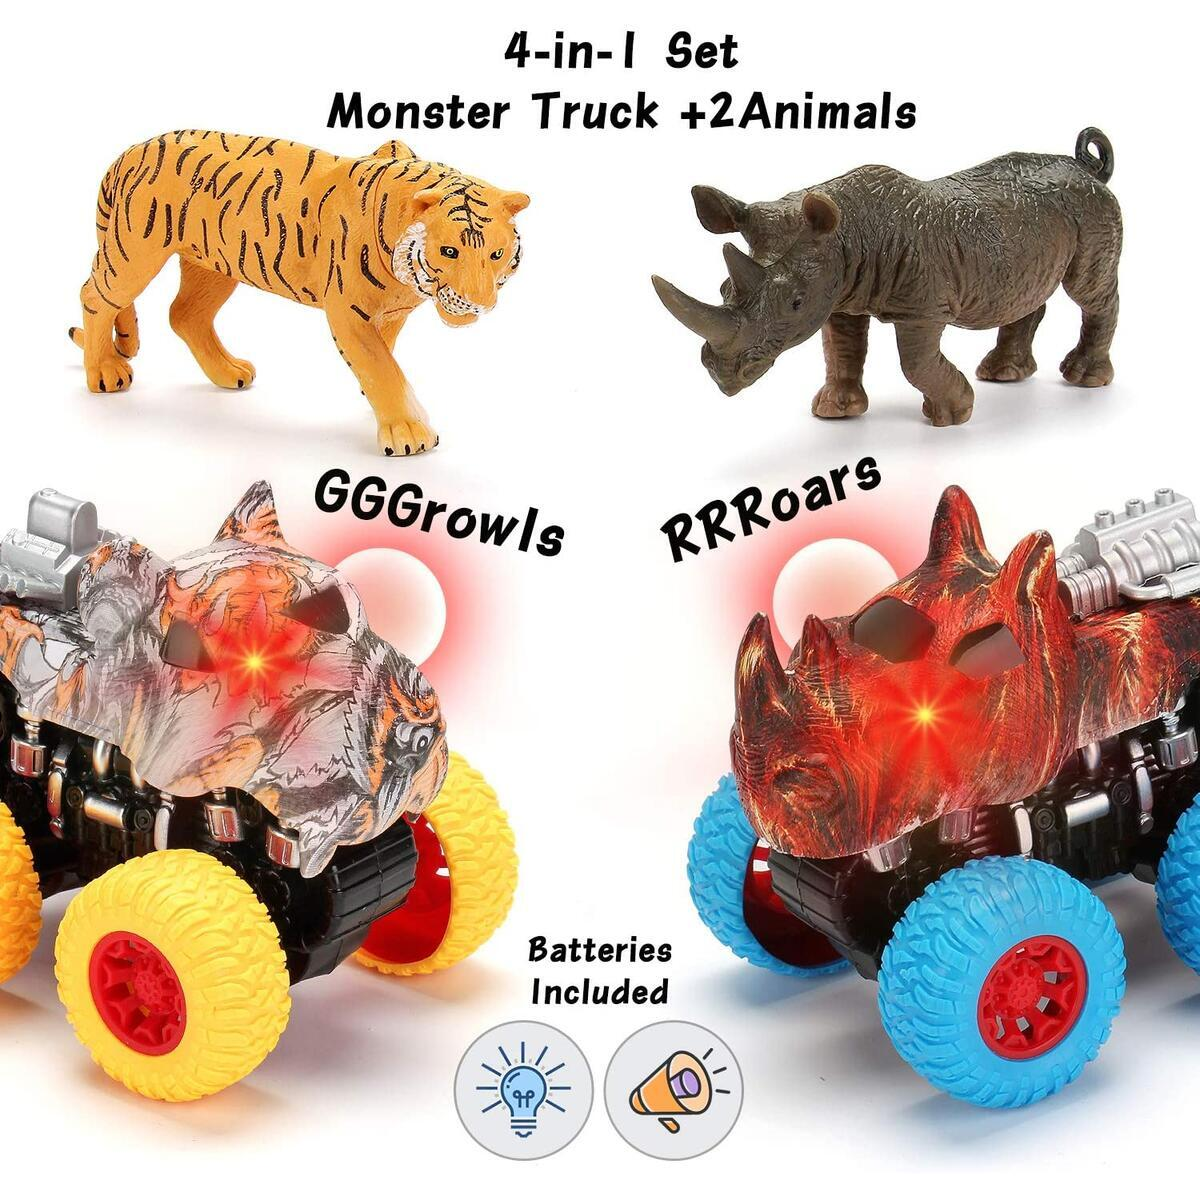 Monster Truck Toy Set | 2 Trucks + 2 Toy Animals | Tiger Truck and Rhinoceros Truck with Lights and Sounds – Mobius Friction Powered Push & Go Up to 30 Meters for Boys & Girls 2 3 4 5 6 7 8 Years Old